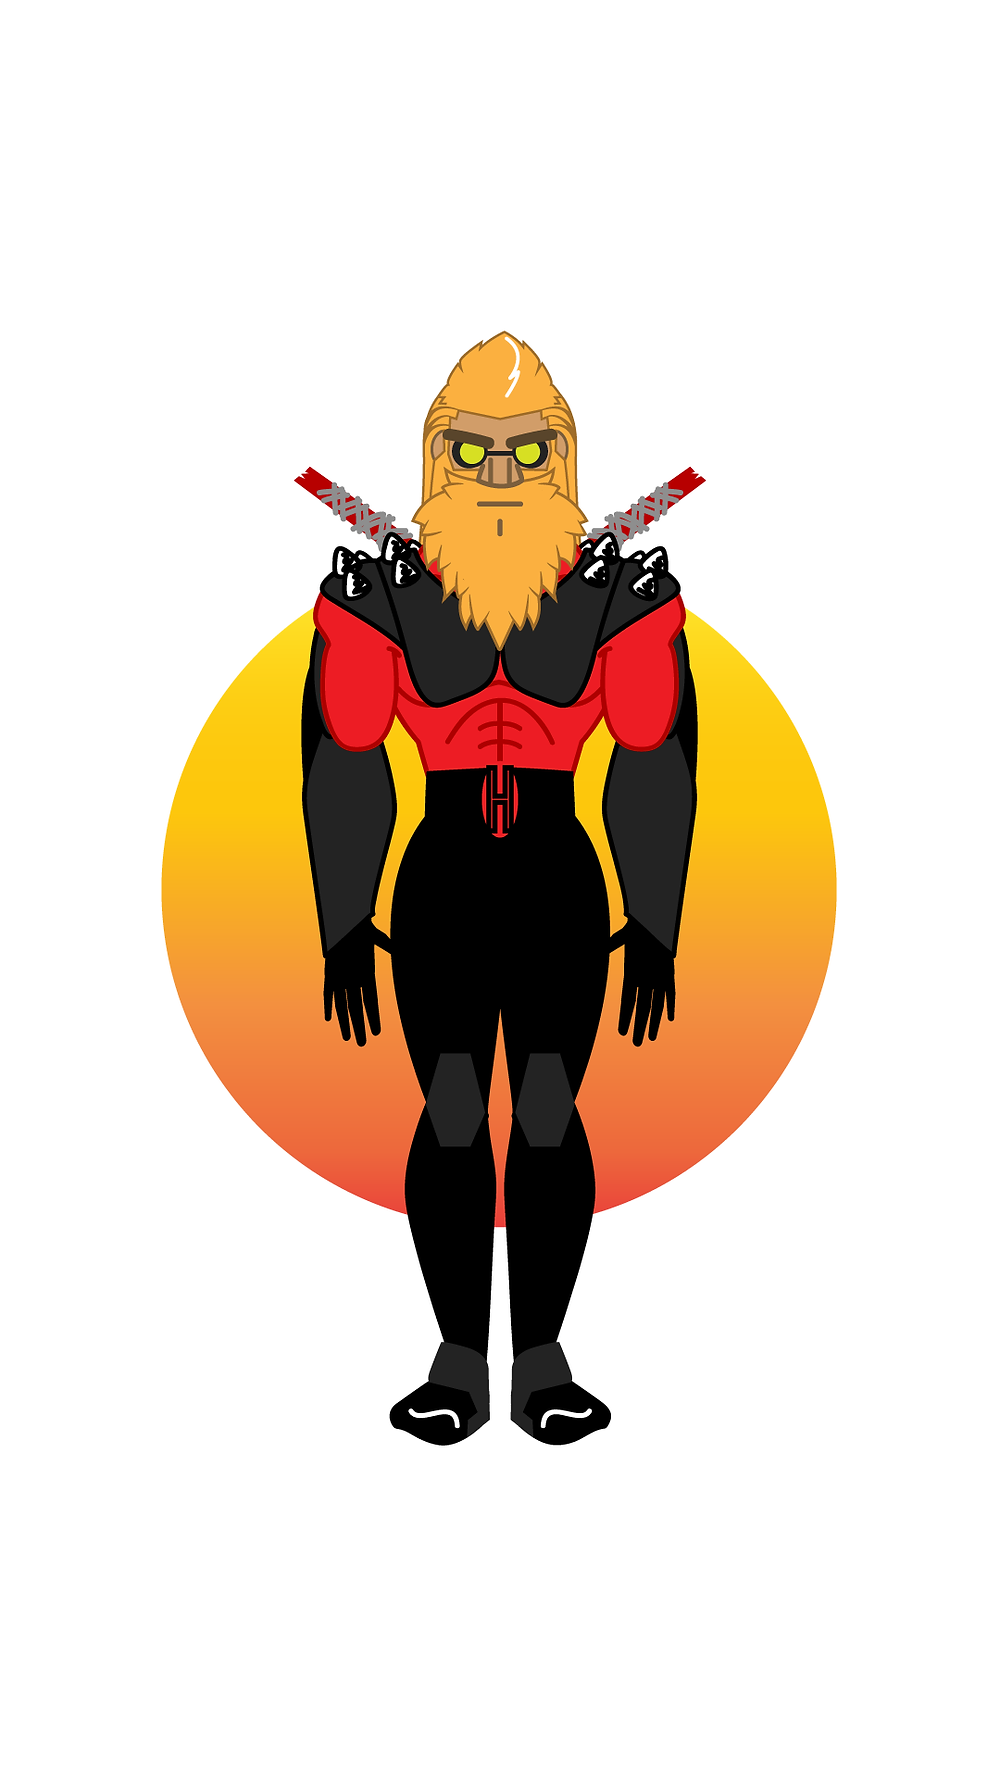 HackUman Red, Faced, Vectored